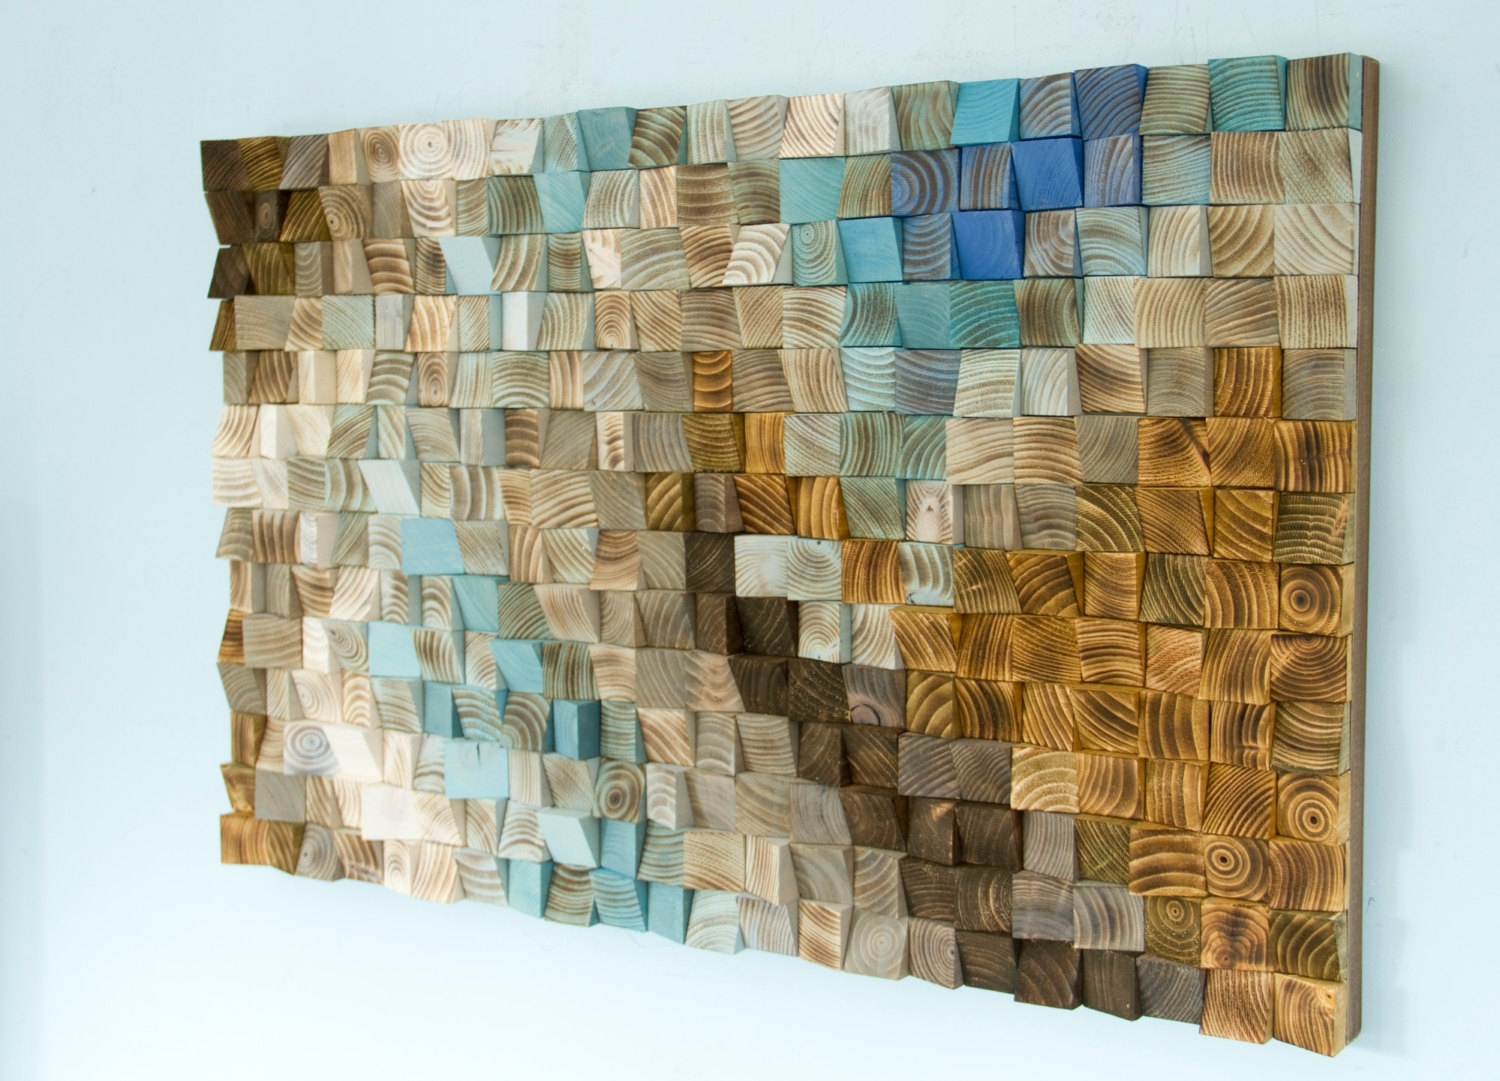 Daebabefaad Good Mosaic Wall Art – Home Design And Wall Decoration Ideas For Mosaic Wall Art (View 5 of 20)